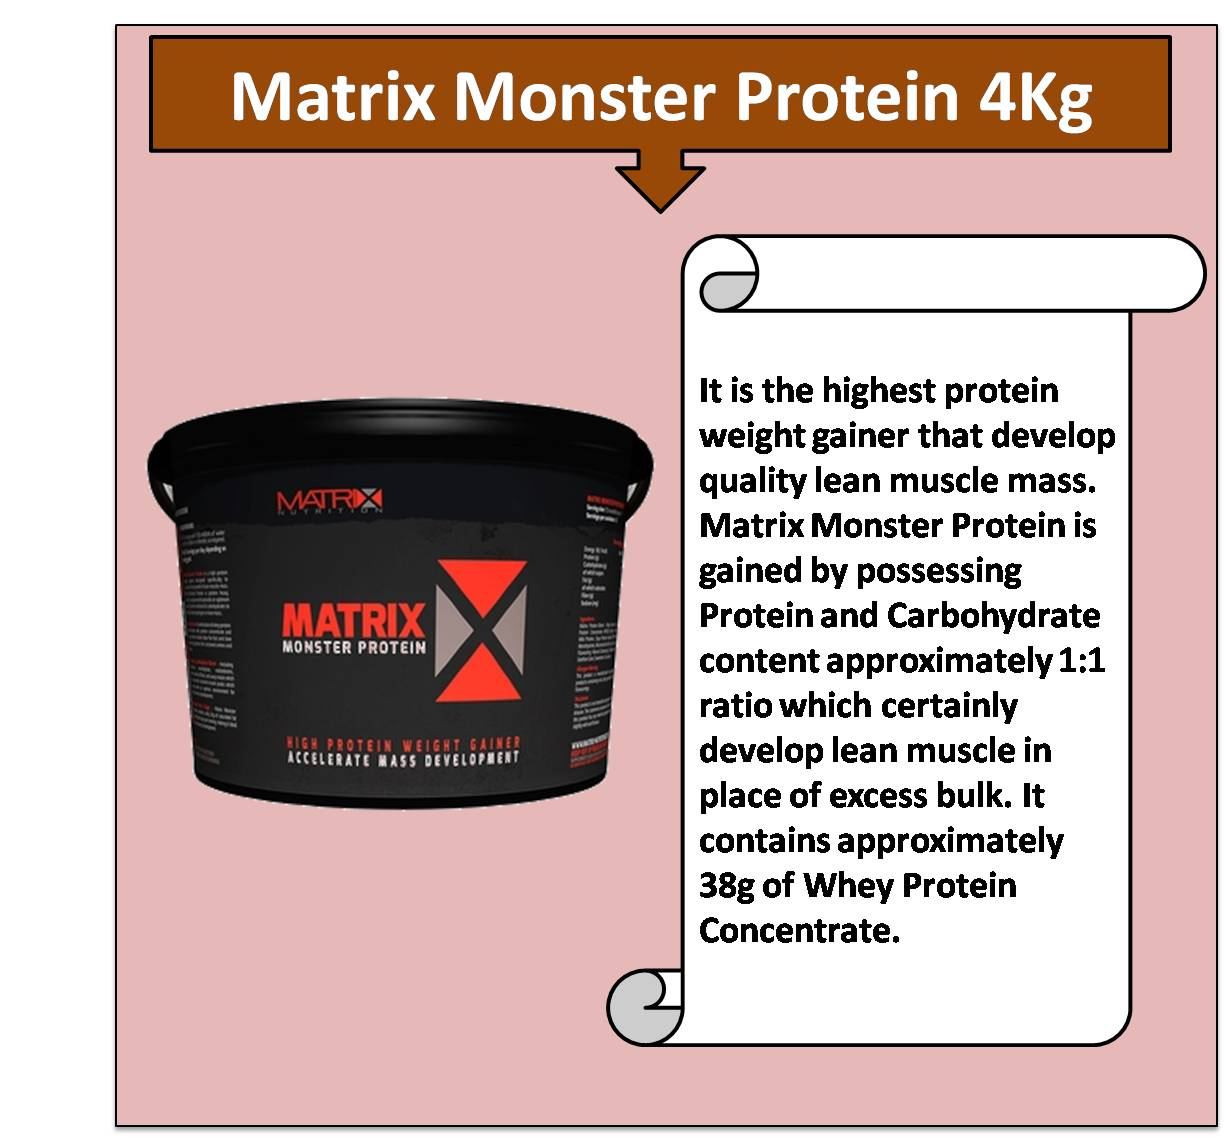 Matrix Monster Protein 4Kg